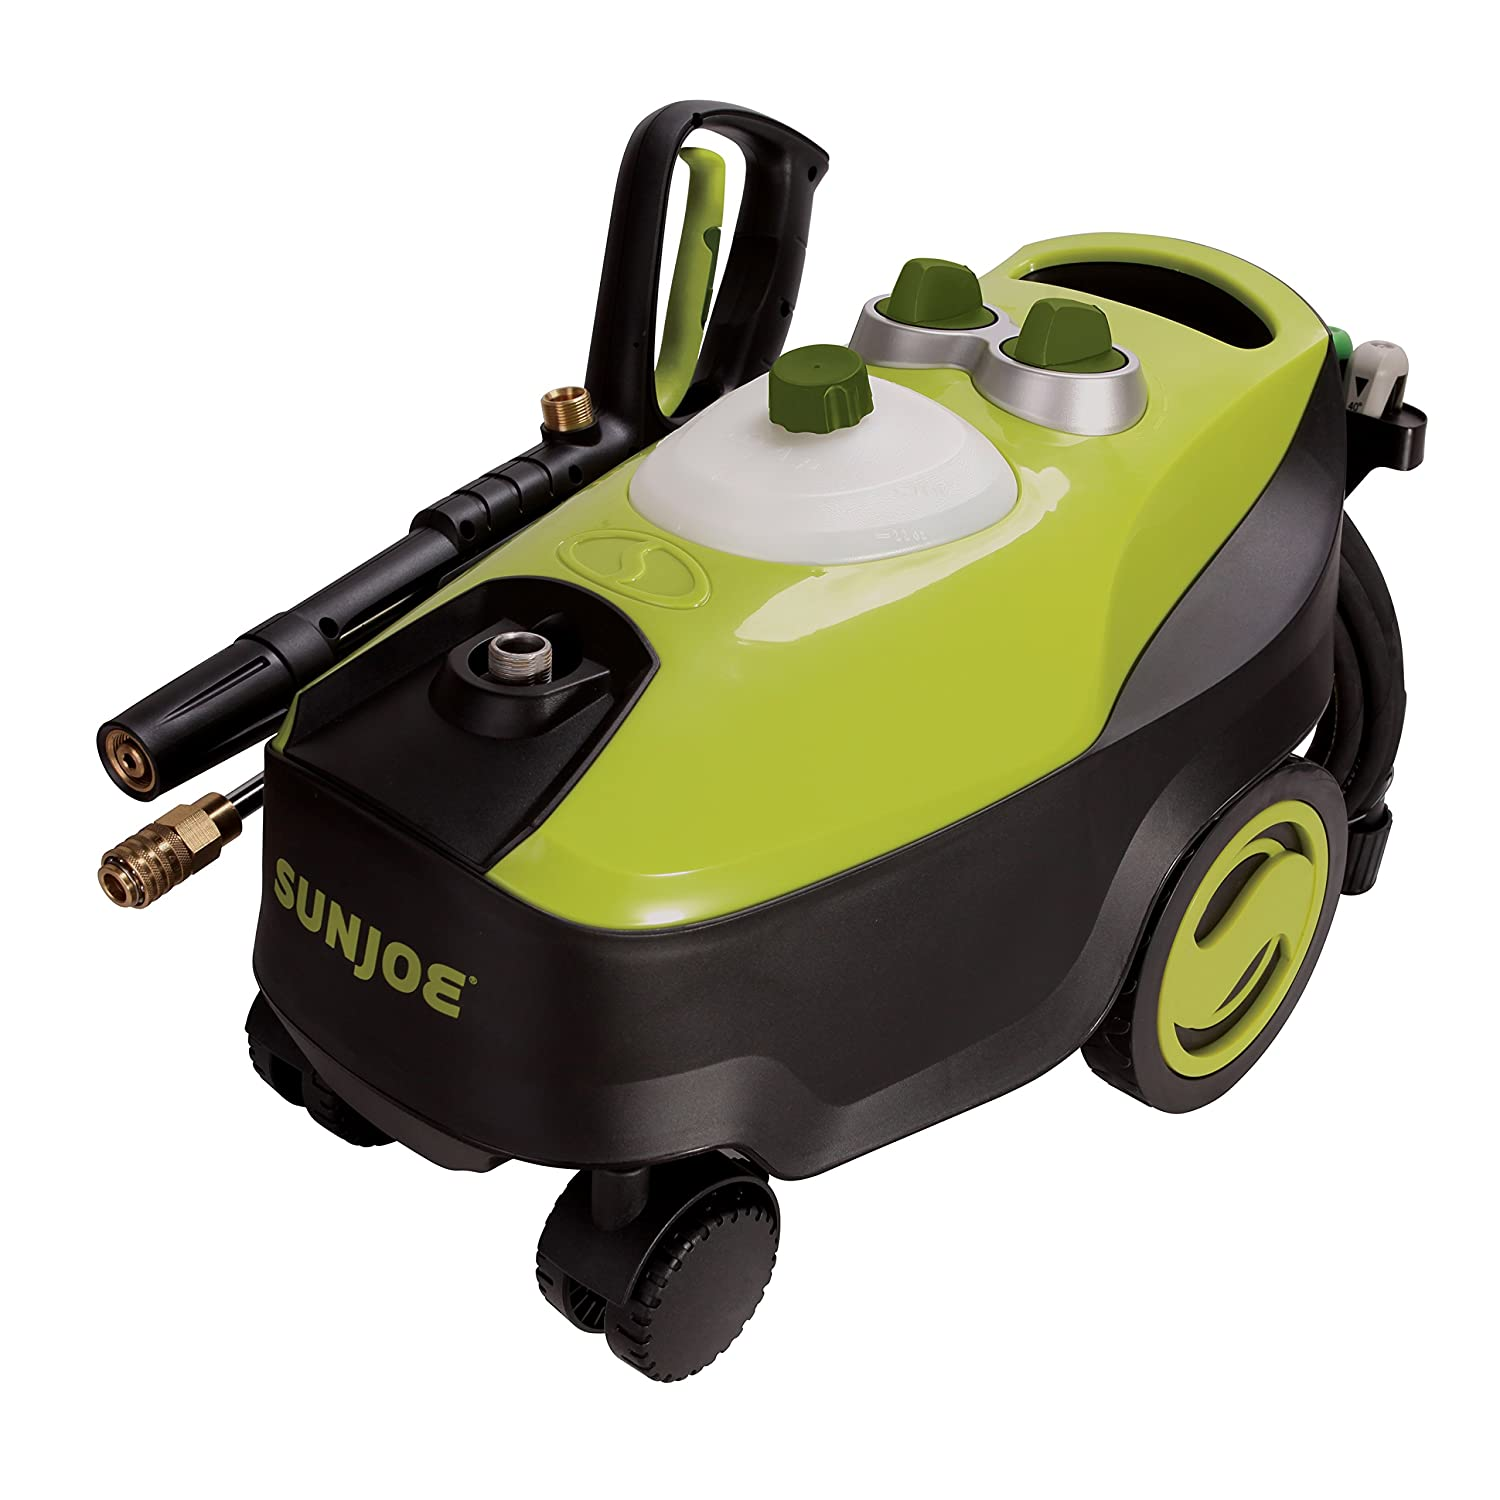 Sun Joe SPX3200 1.76 GPM 14.5-Amp 2030 PSI Max GO ANYWHERE Electric Pressure Washer